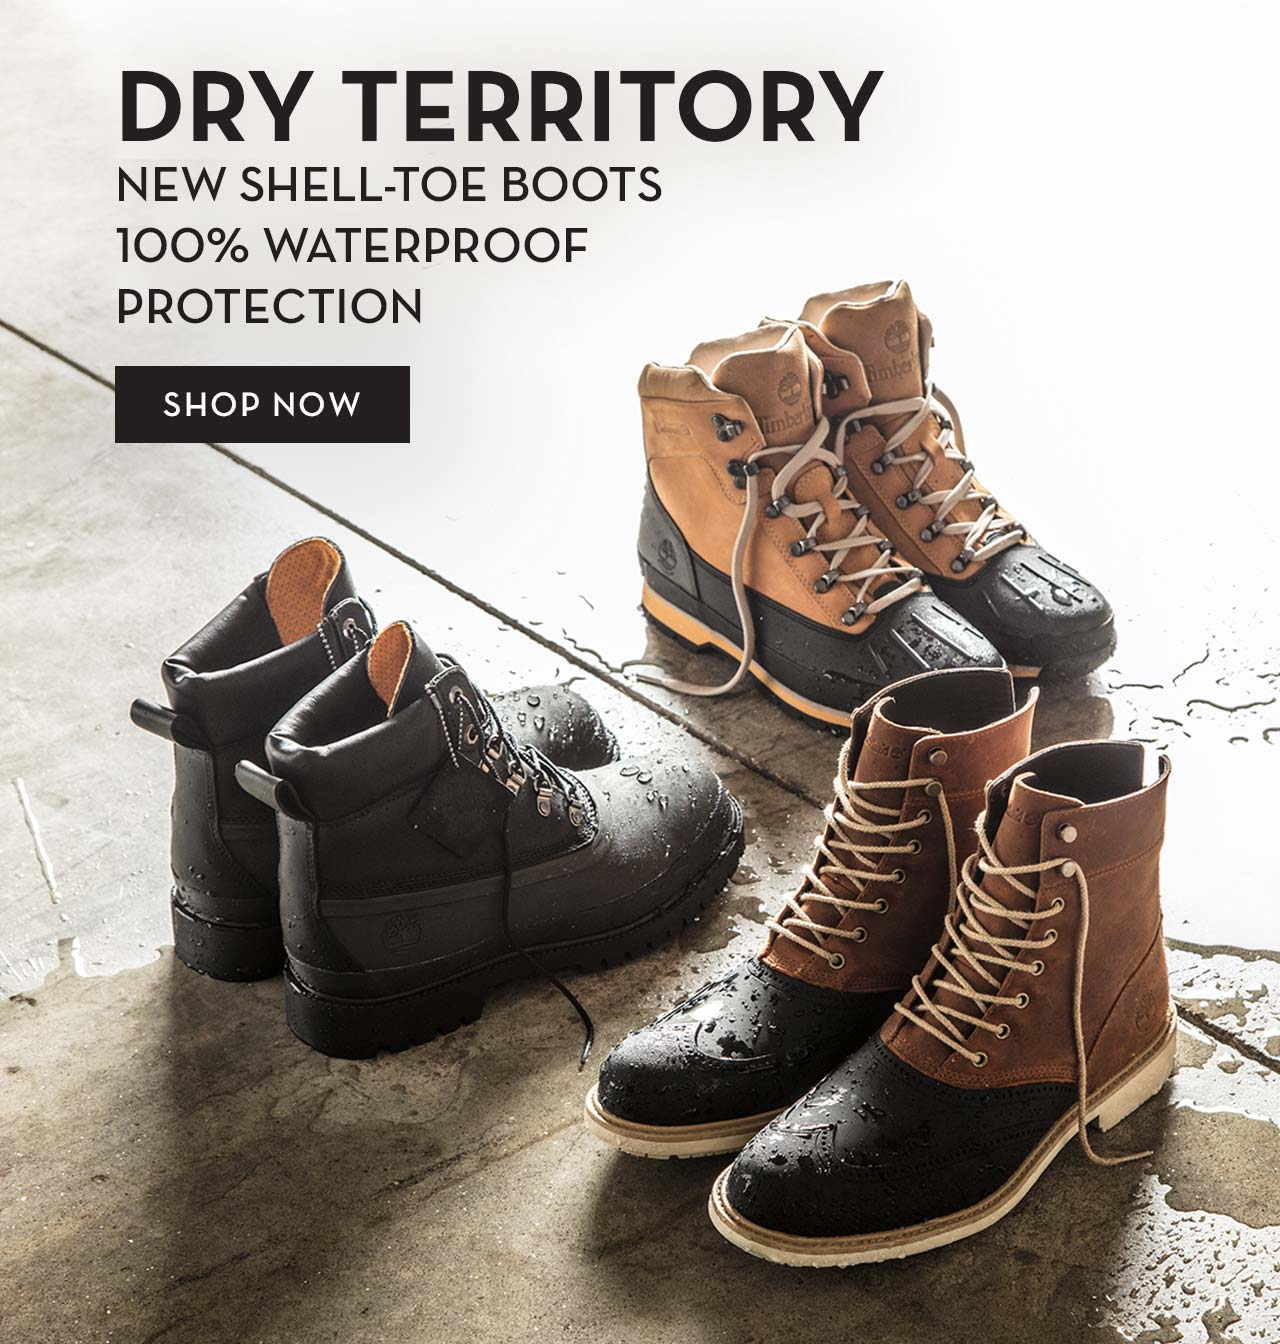 Dry Territory New Shell Toe Boots 100% Waterproof Protection Shop Now